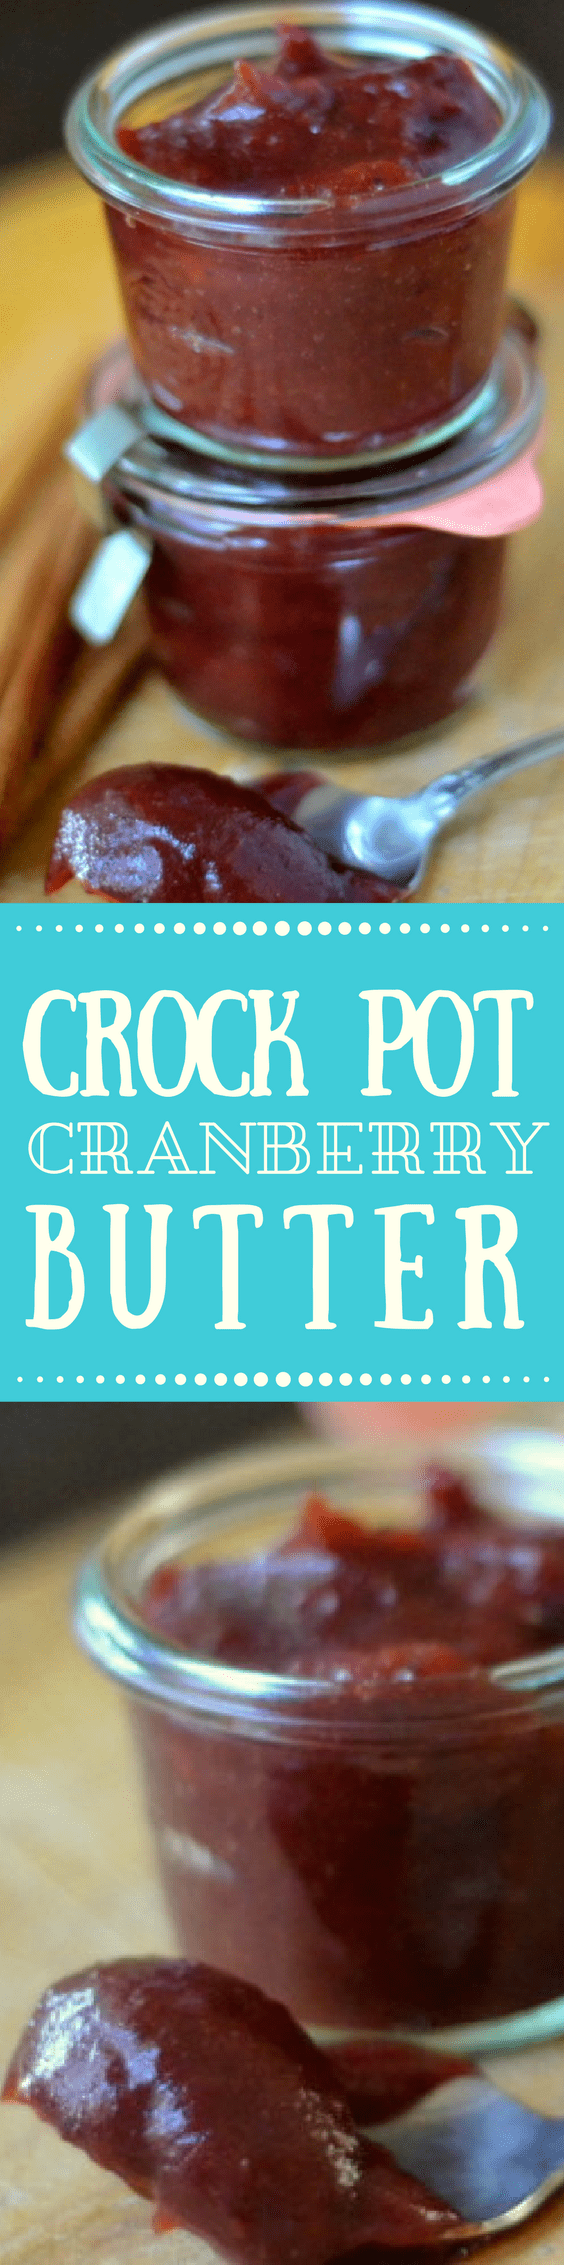 Crock Pot Cranberry Butter is an impossibly silky, tangy fruit butter that is made right in the crock pot ~ you'll want to slather it on toast, scones, biscuits, muffins, turkey sandwiches ~ and so much more! #cranberries #cranberrybutter #applebutter #crockpotapplebutter #Thanksgiving #cranberrysauce #cranberryjam #smallbatchjam #refrigeratorjam #cranberryrecipe